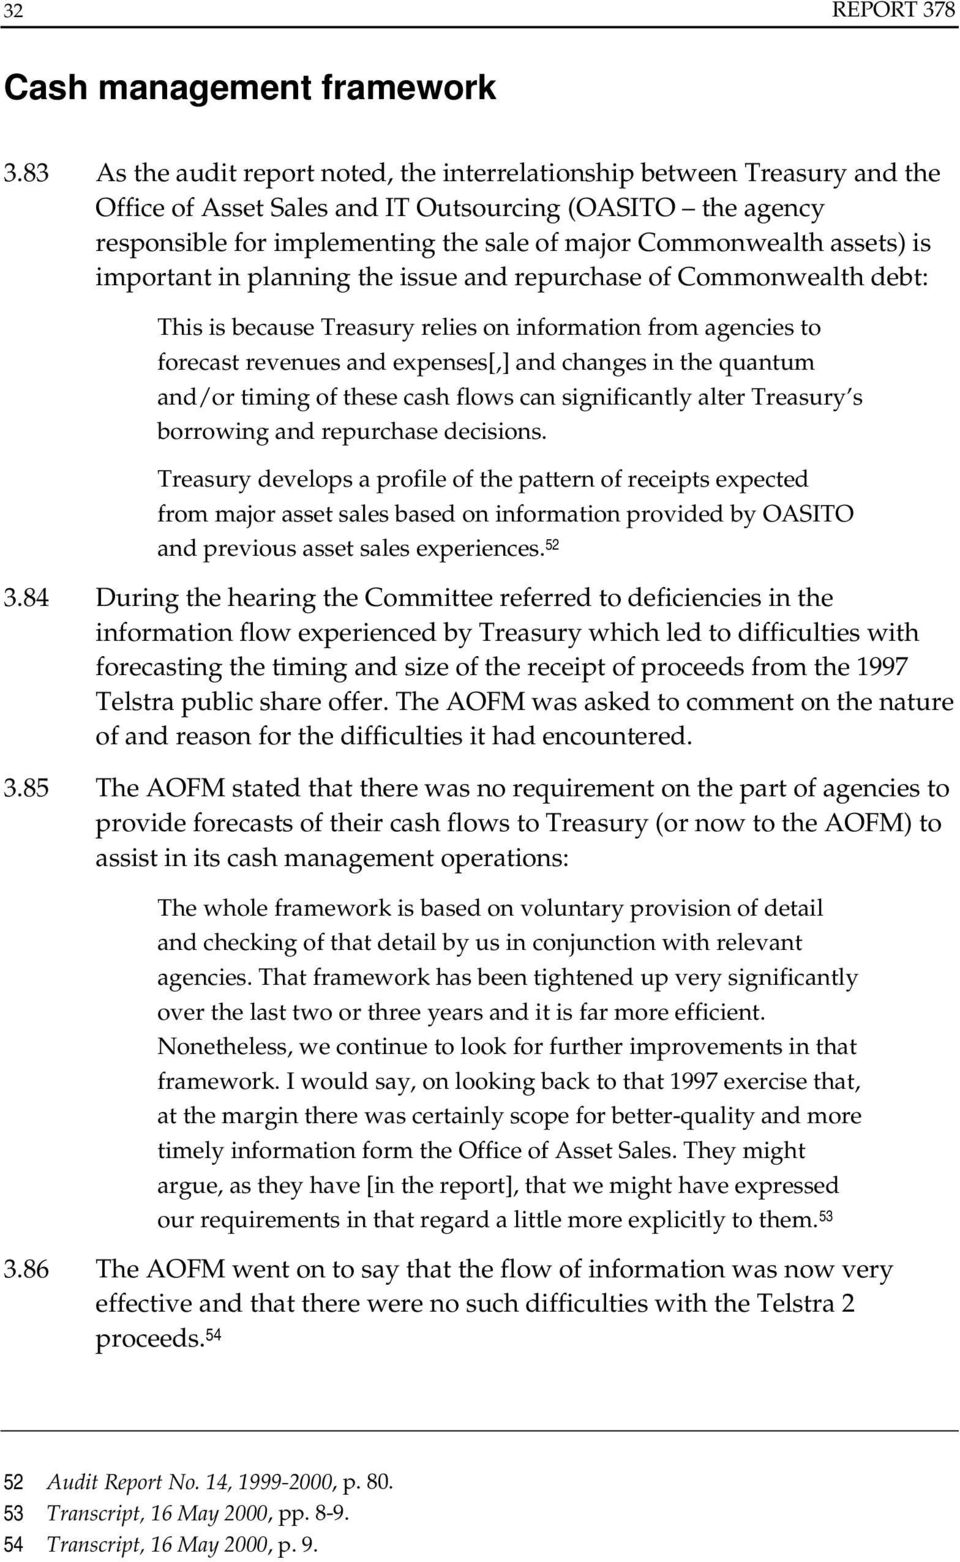 assets) is important in planning the issue and repurchase of Commonwealth debt: This is because Treasury relies on information from agencies to forecast revenues and expenses[,] and changes in the